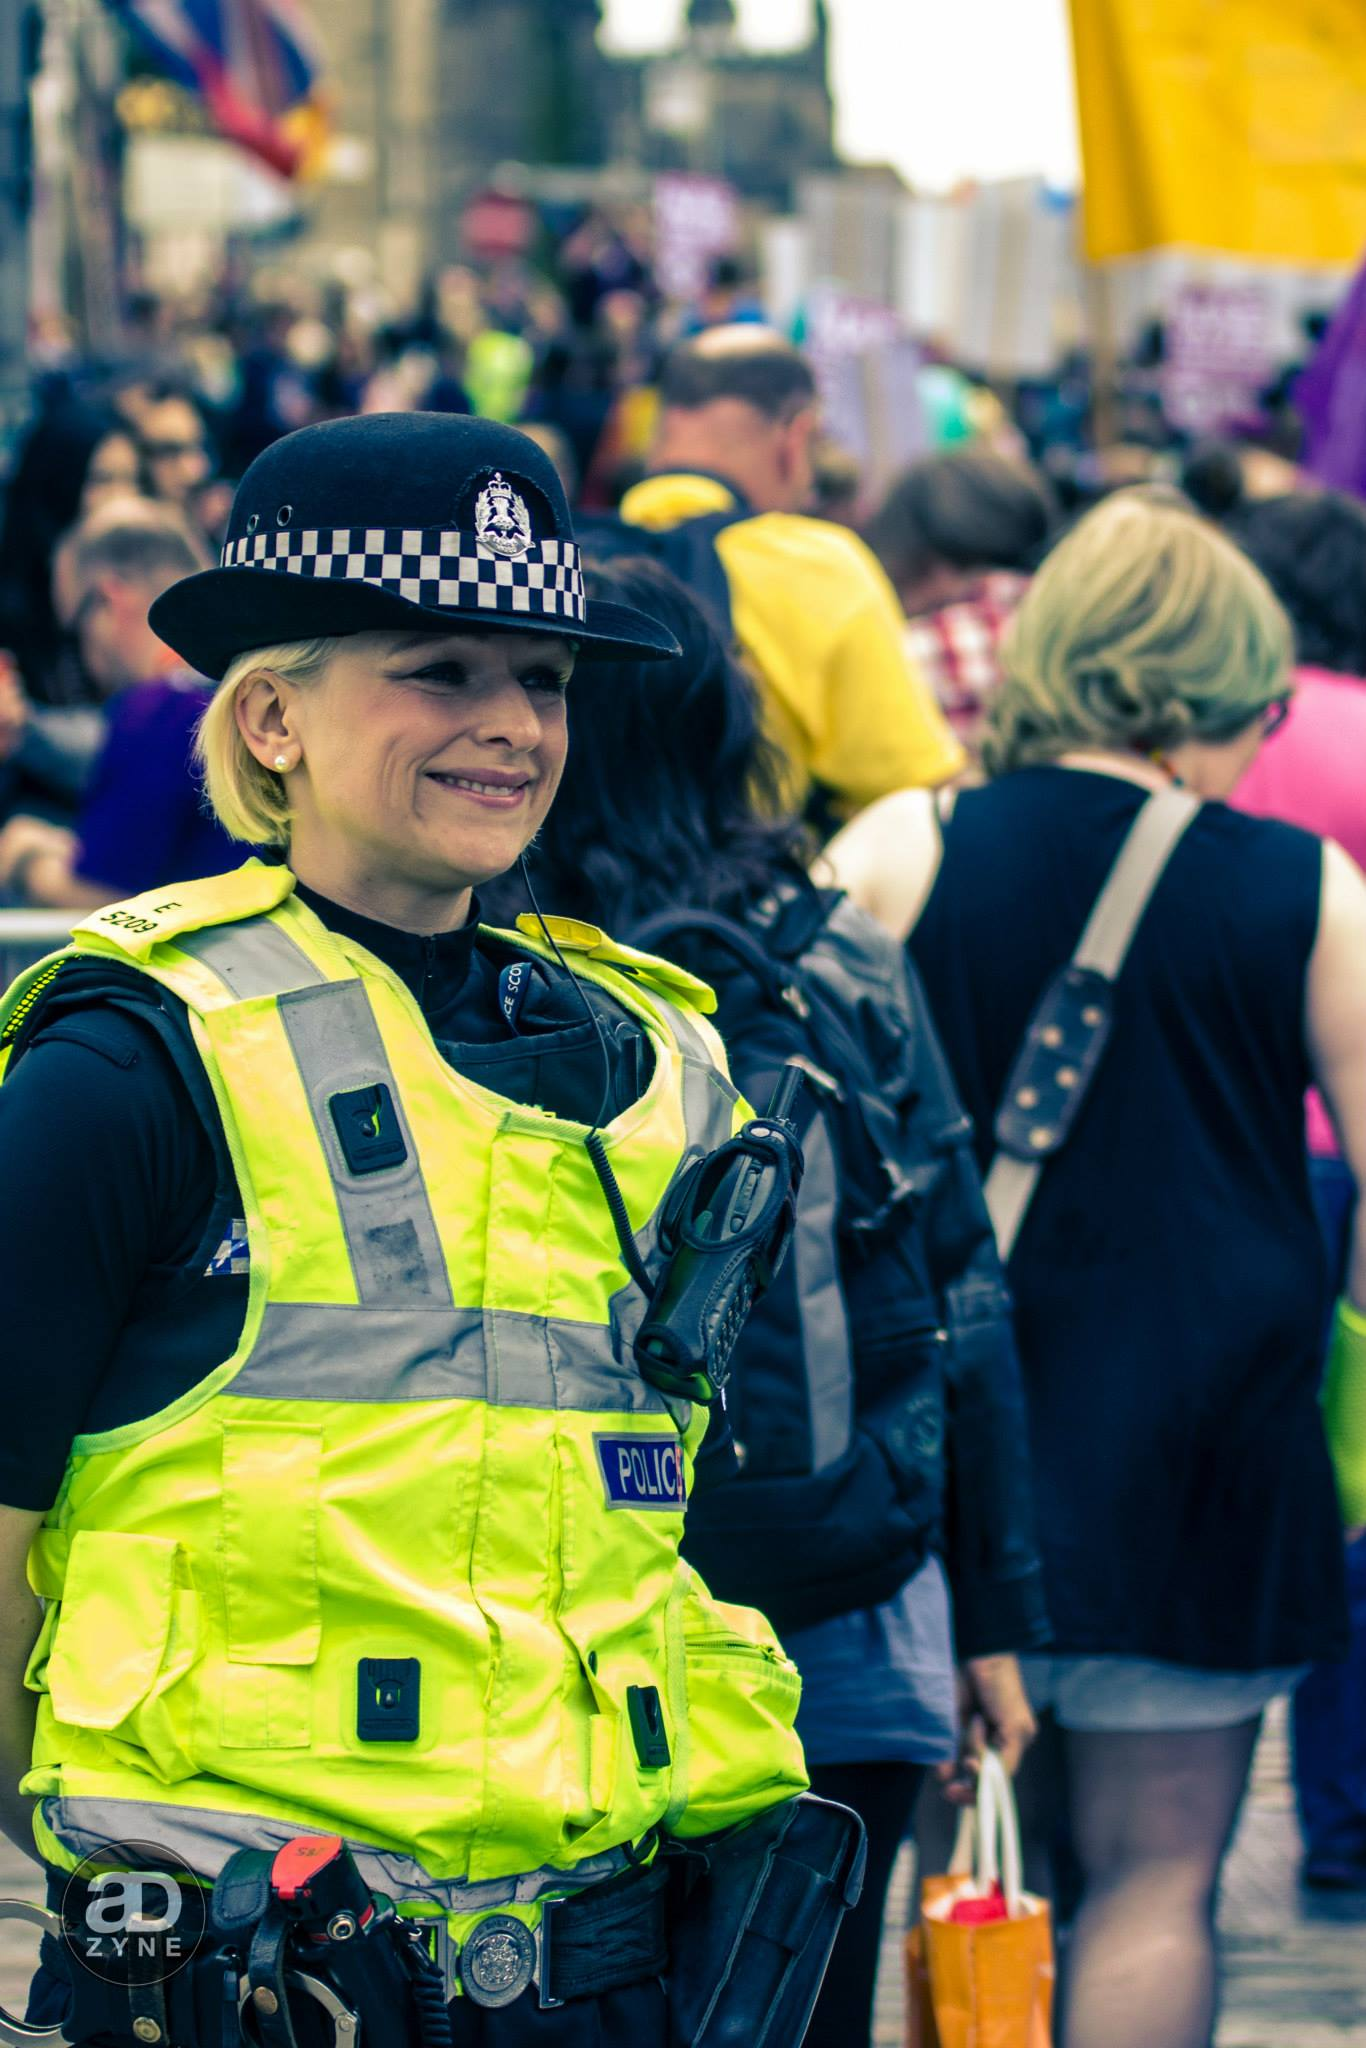 Policewoman at Edinburgh Pride